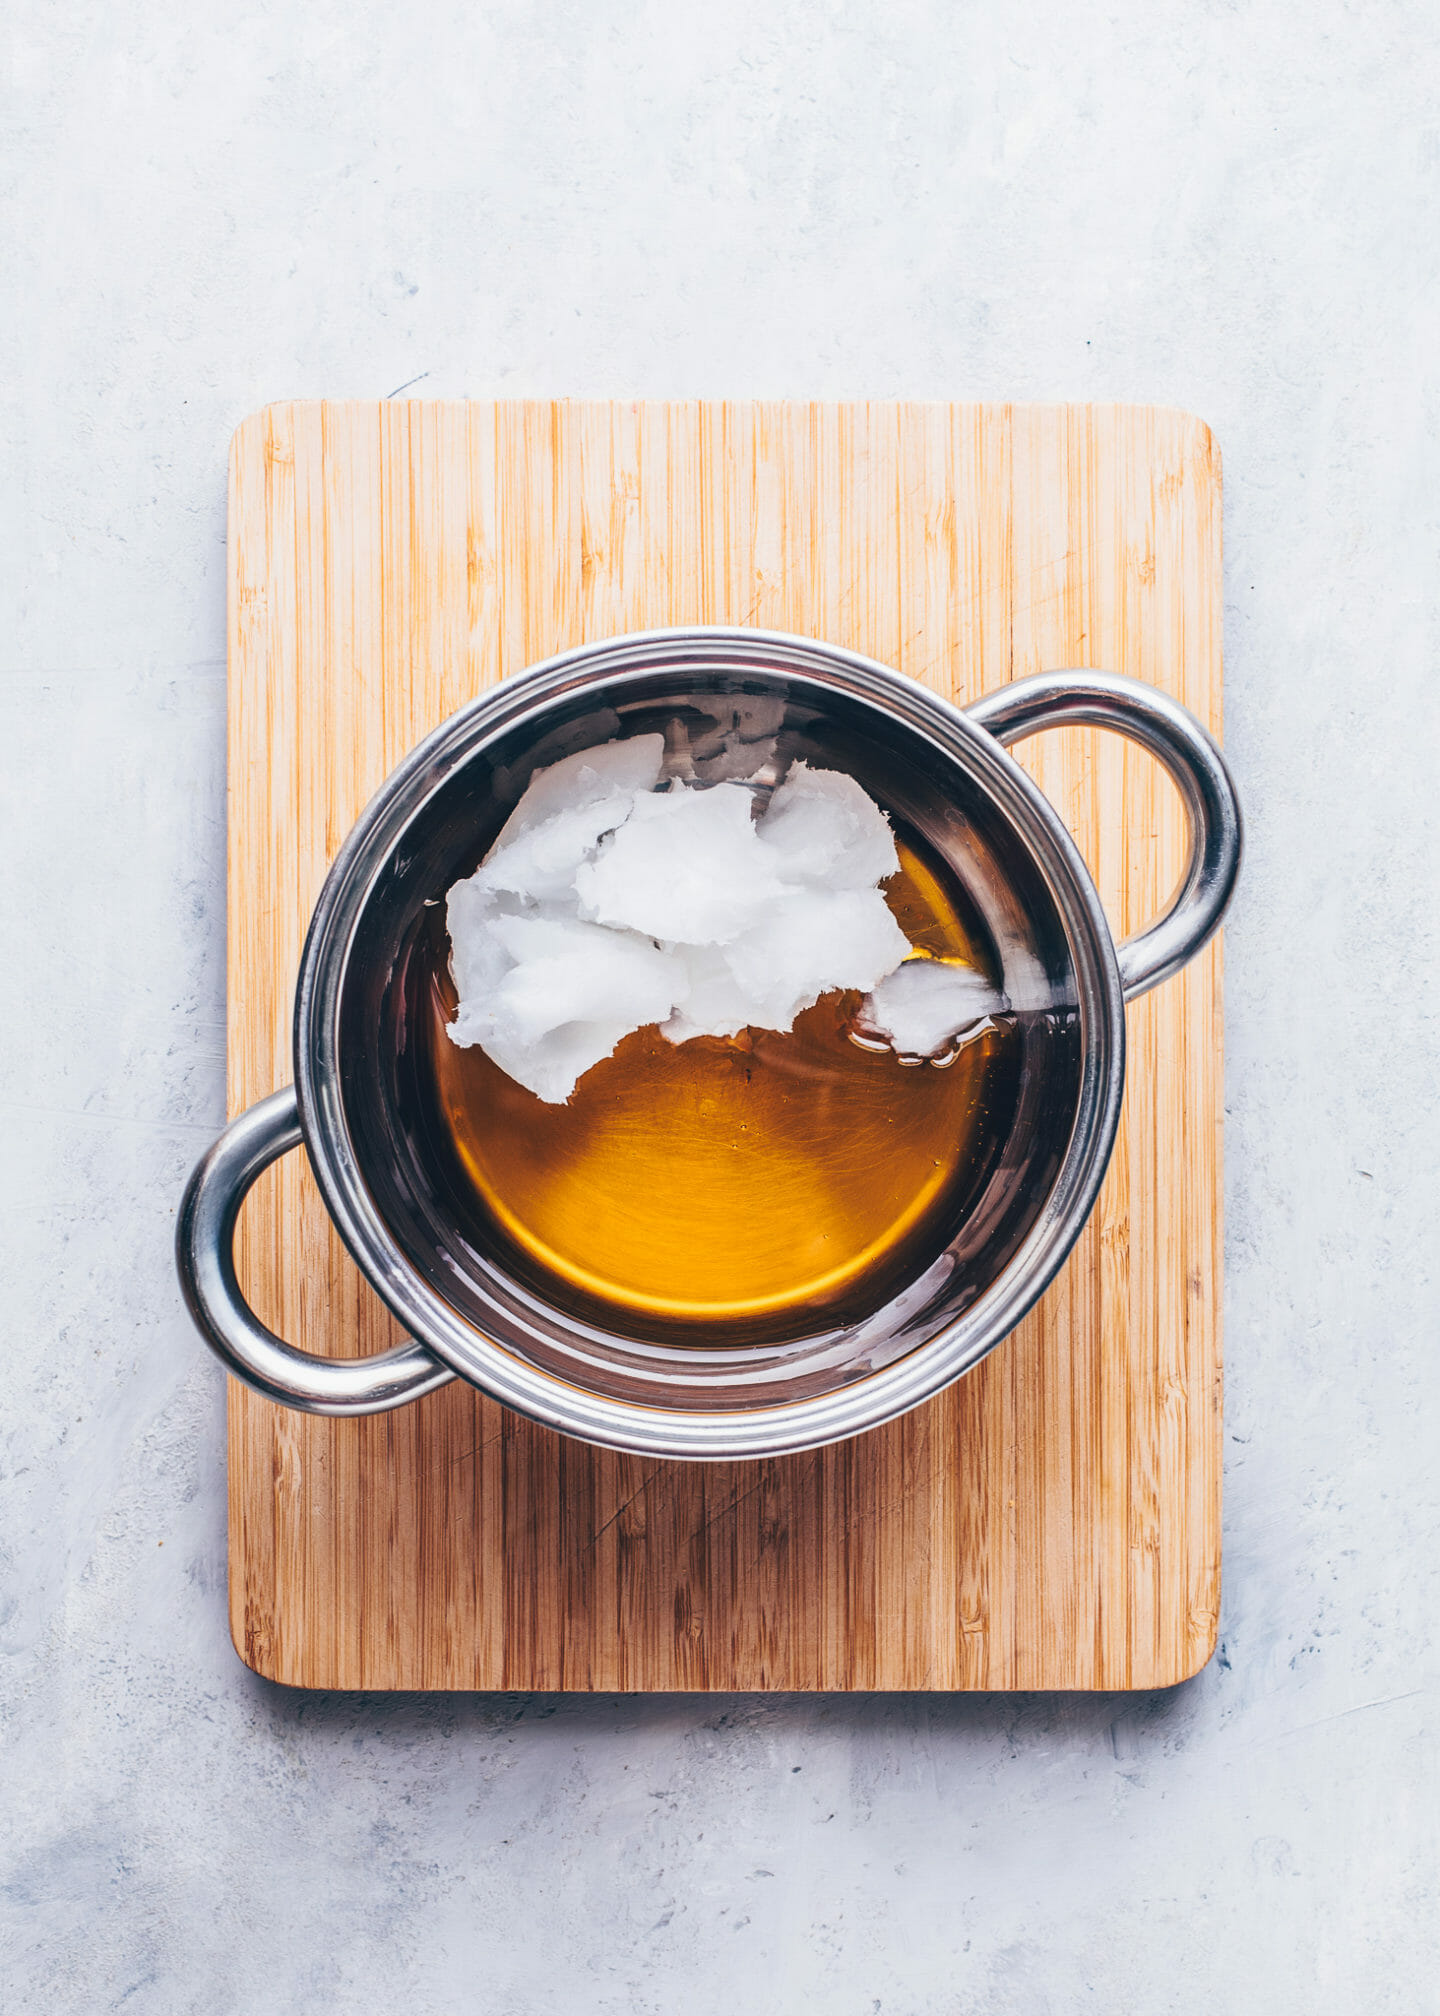 coconut oil and maple syrup in a saucepan